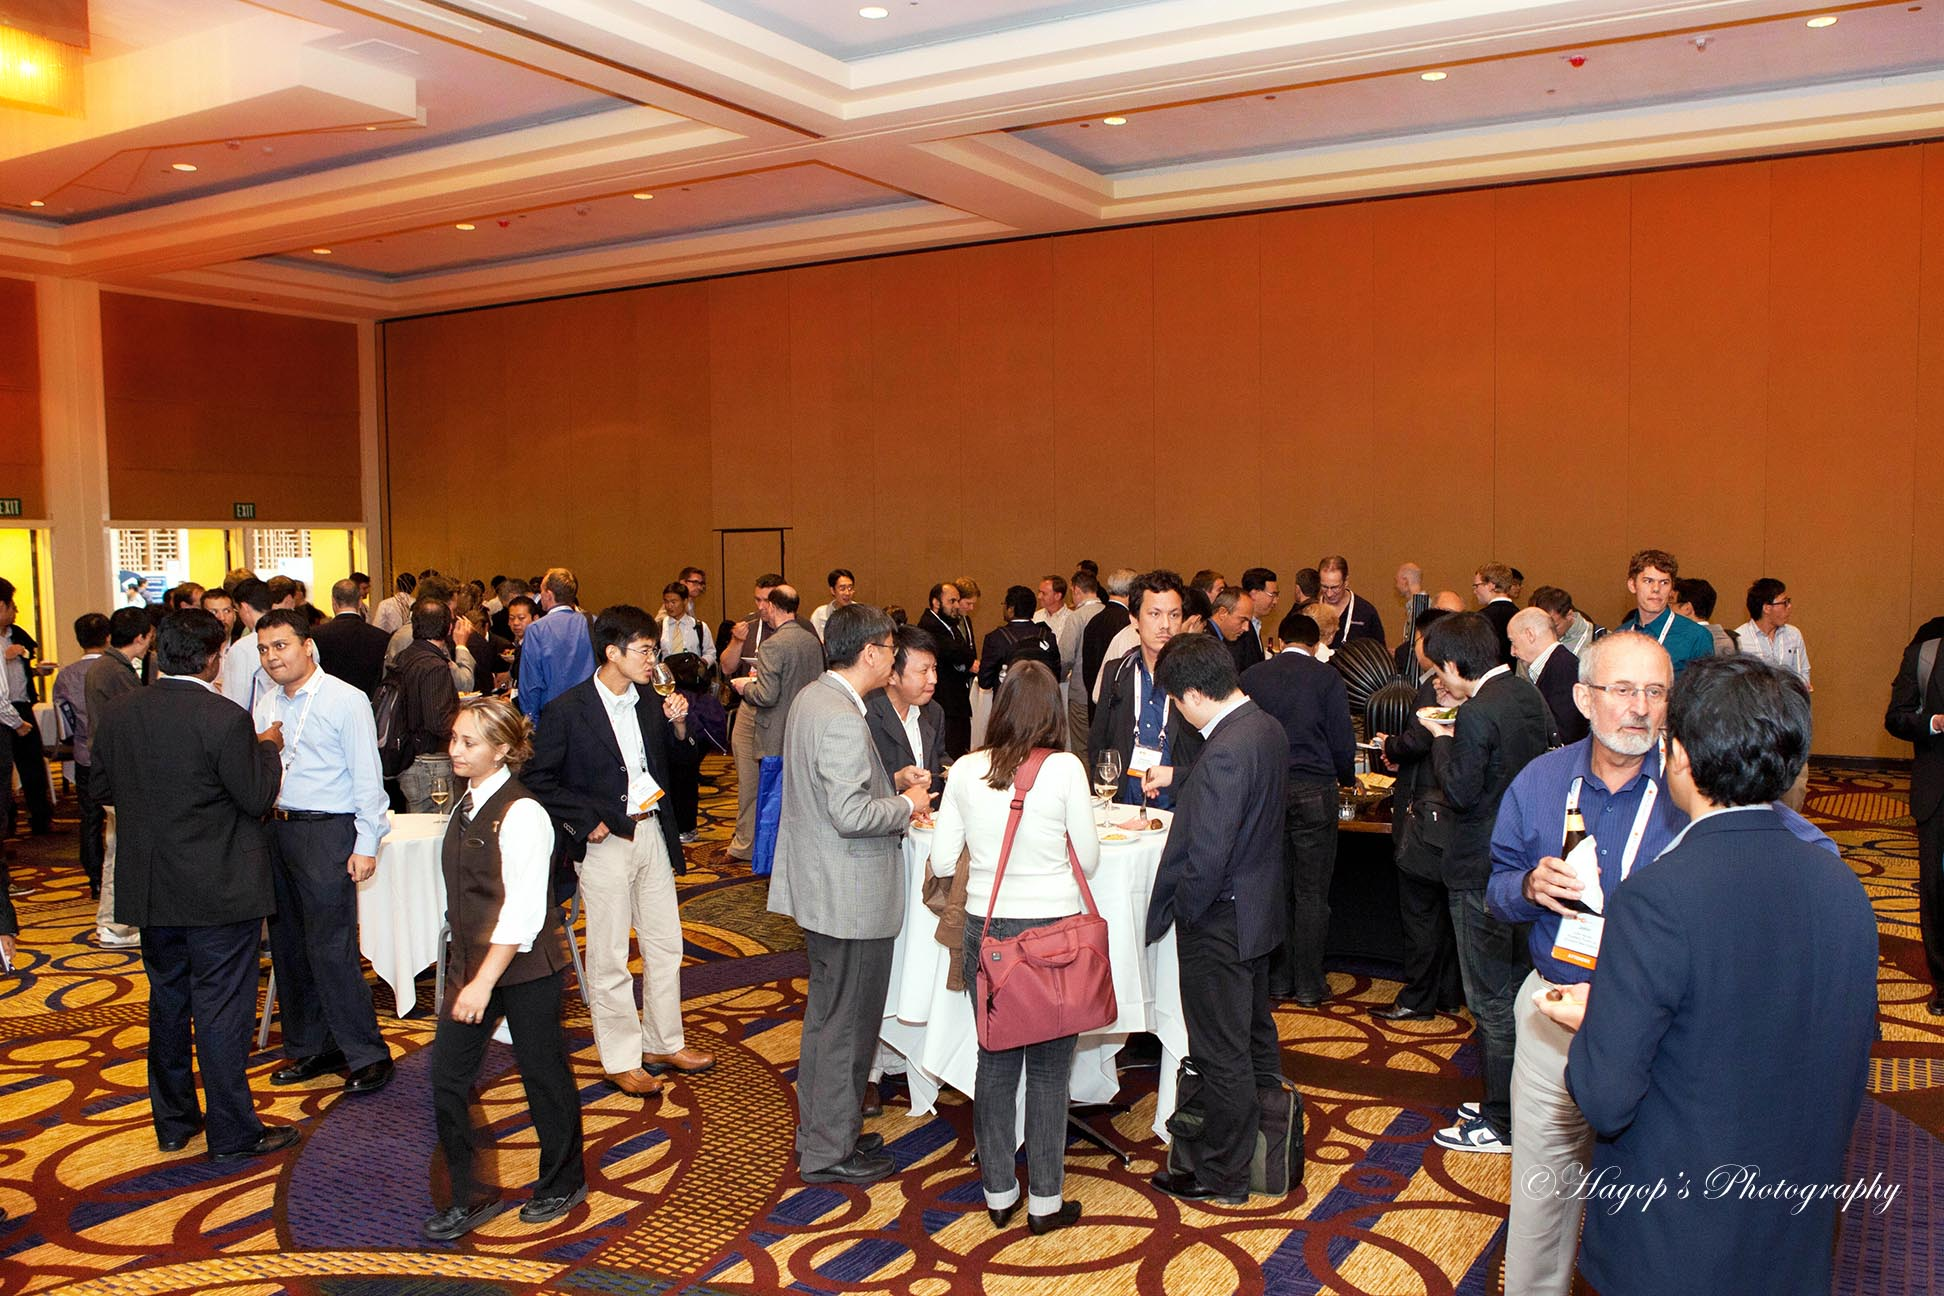 general view of the reception at the end of the conference